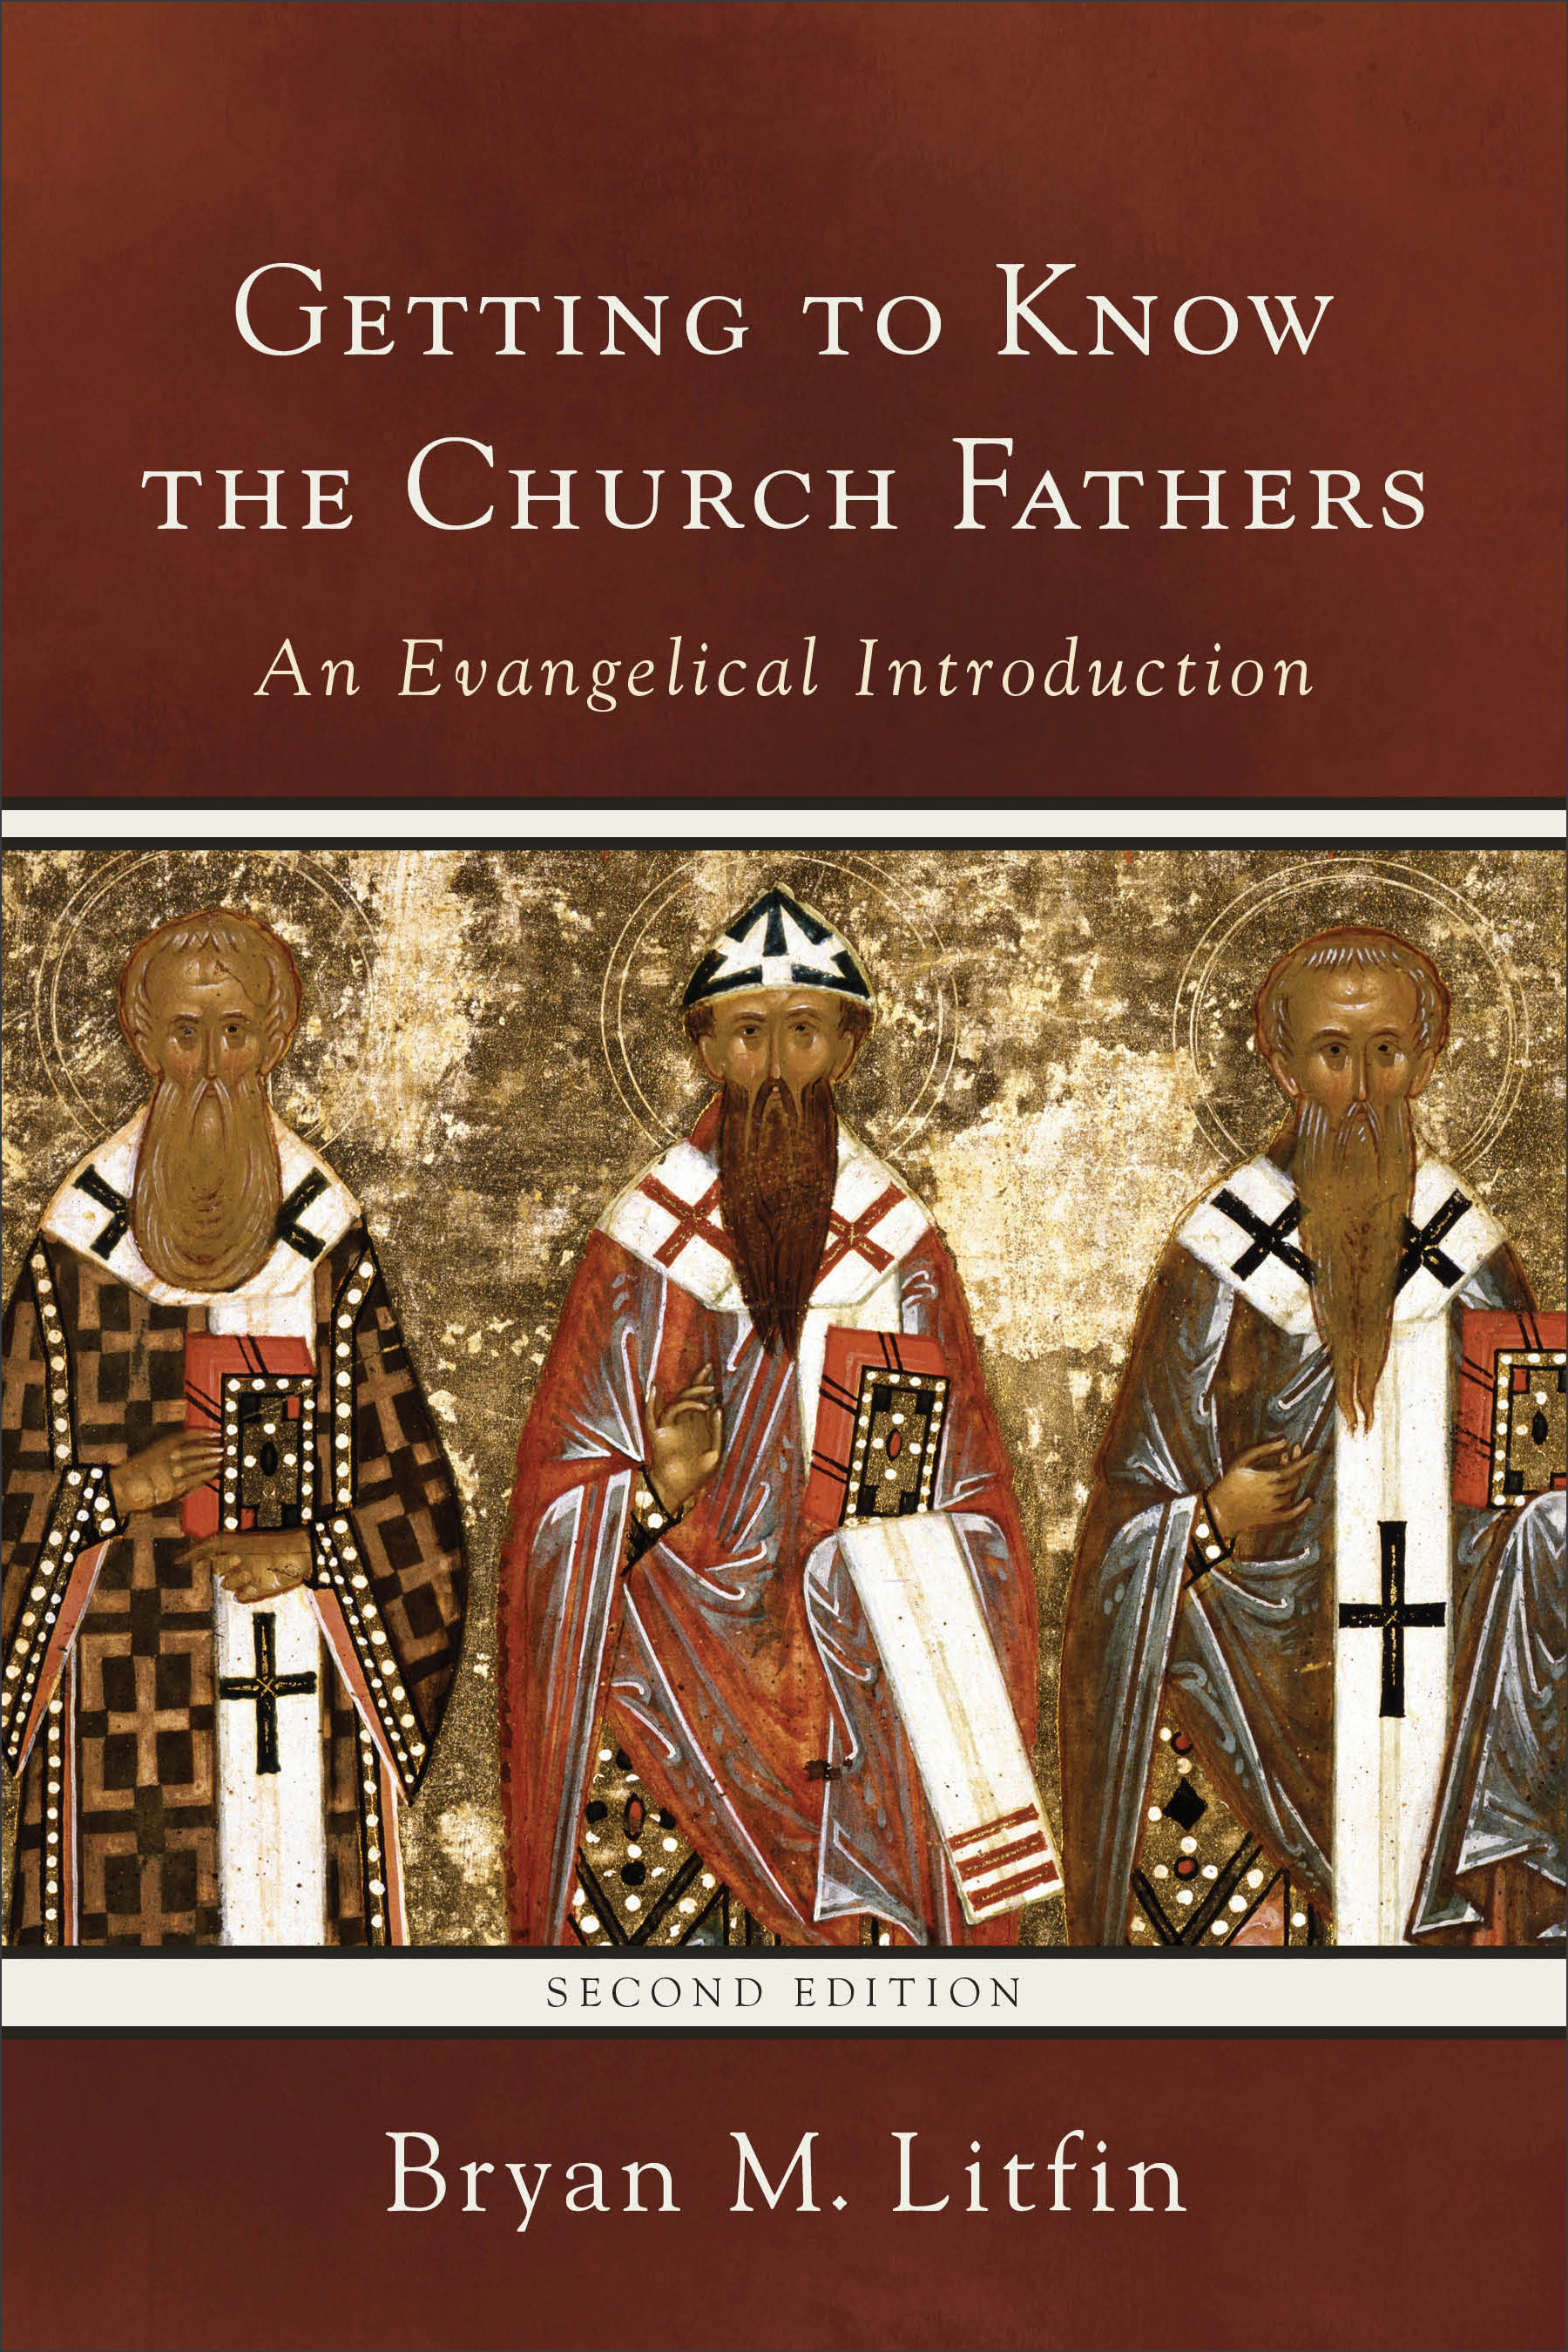 Spiritual reading, or Why read the Bible and the works of the holy fathers